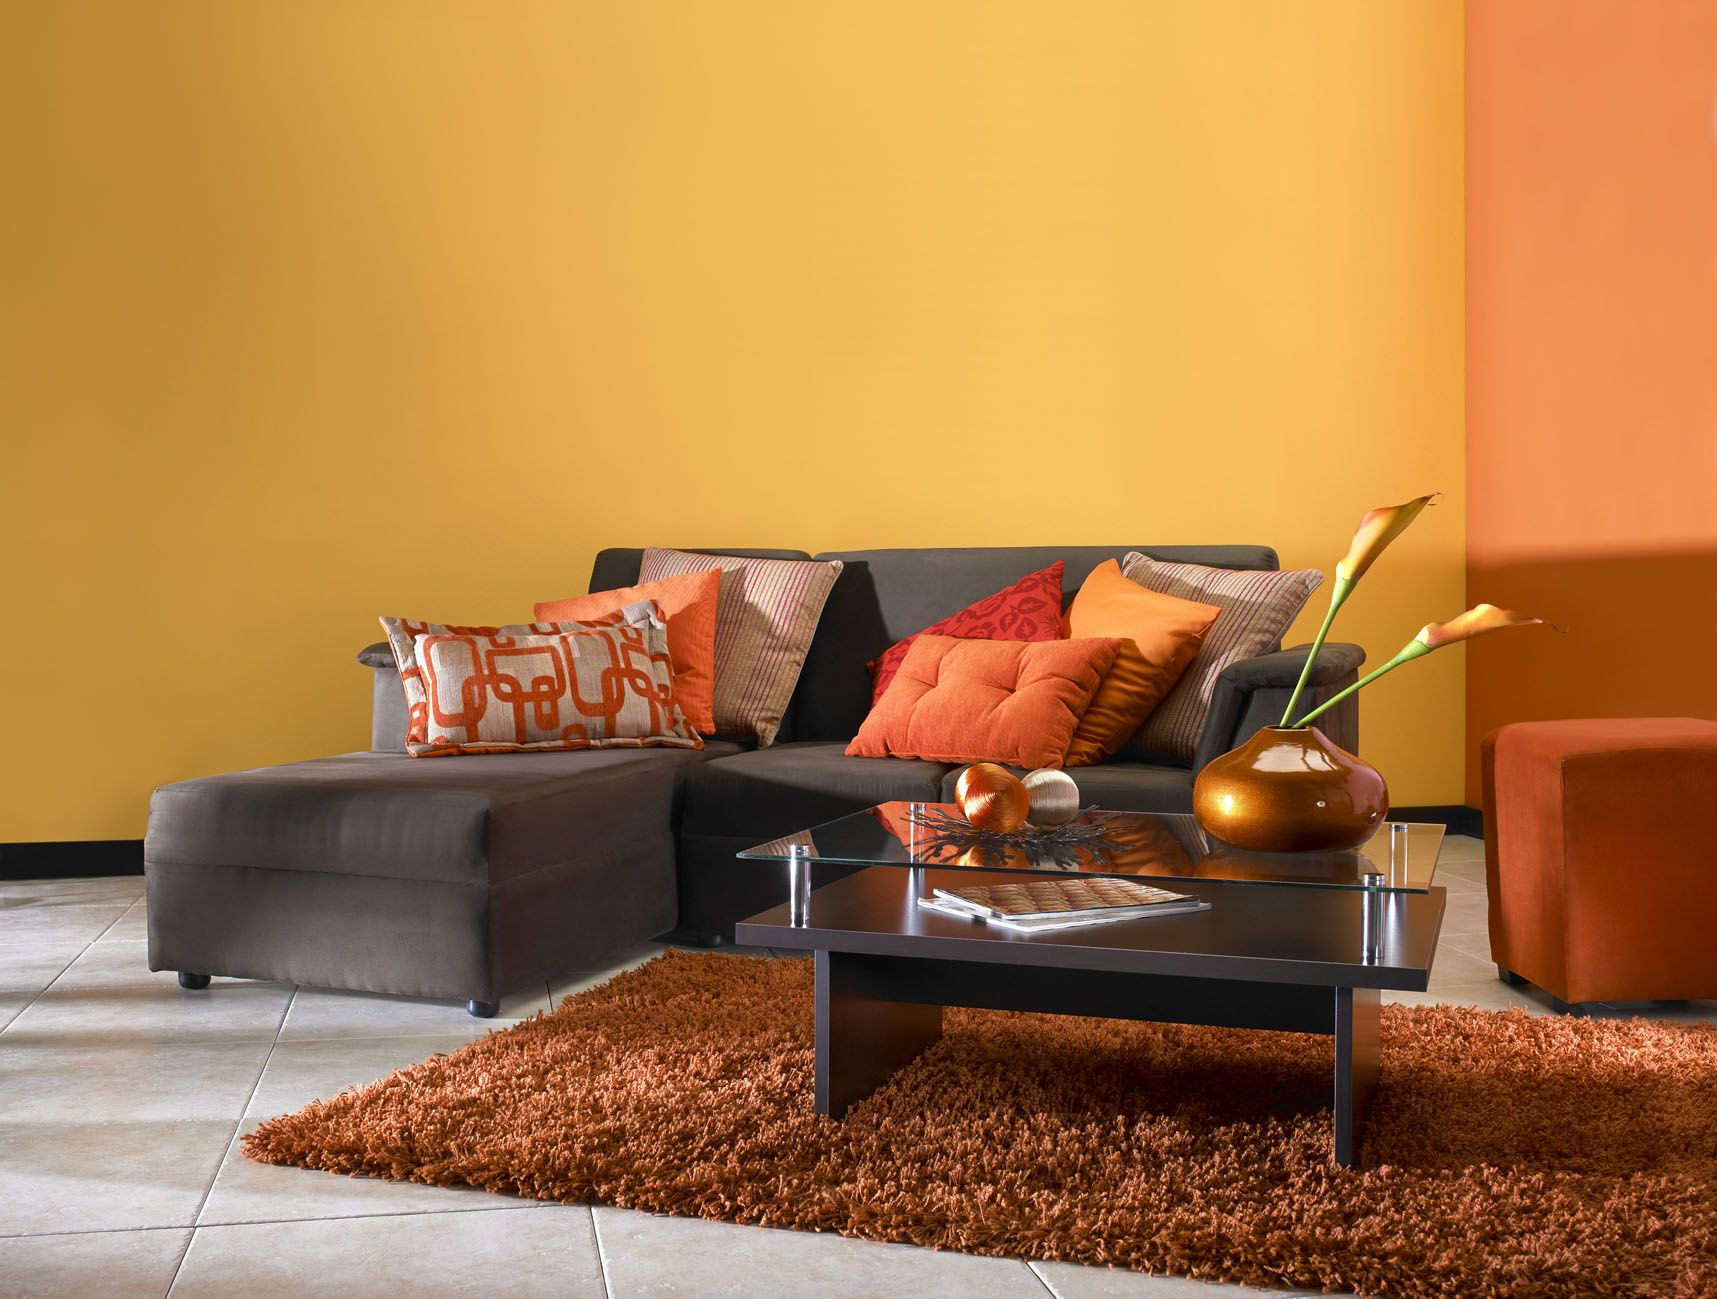 10 Salas Decoradas En Color Naranja Tips Para El Diseño De Salas